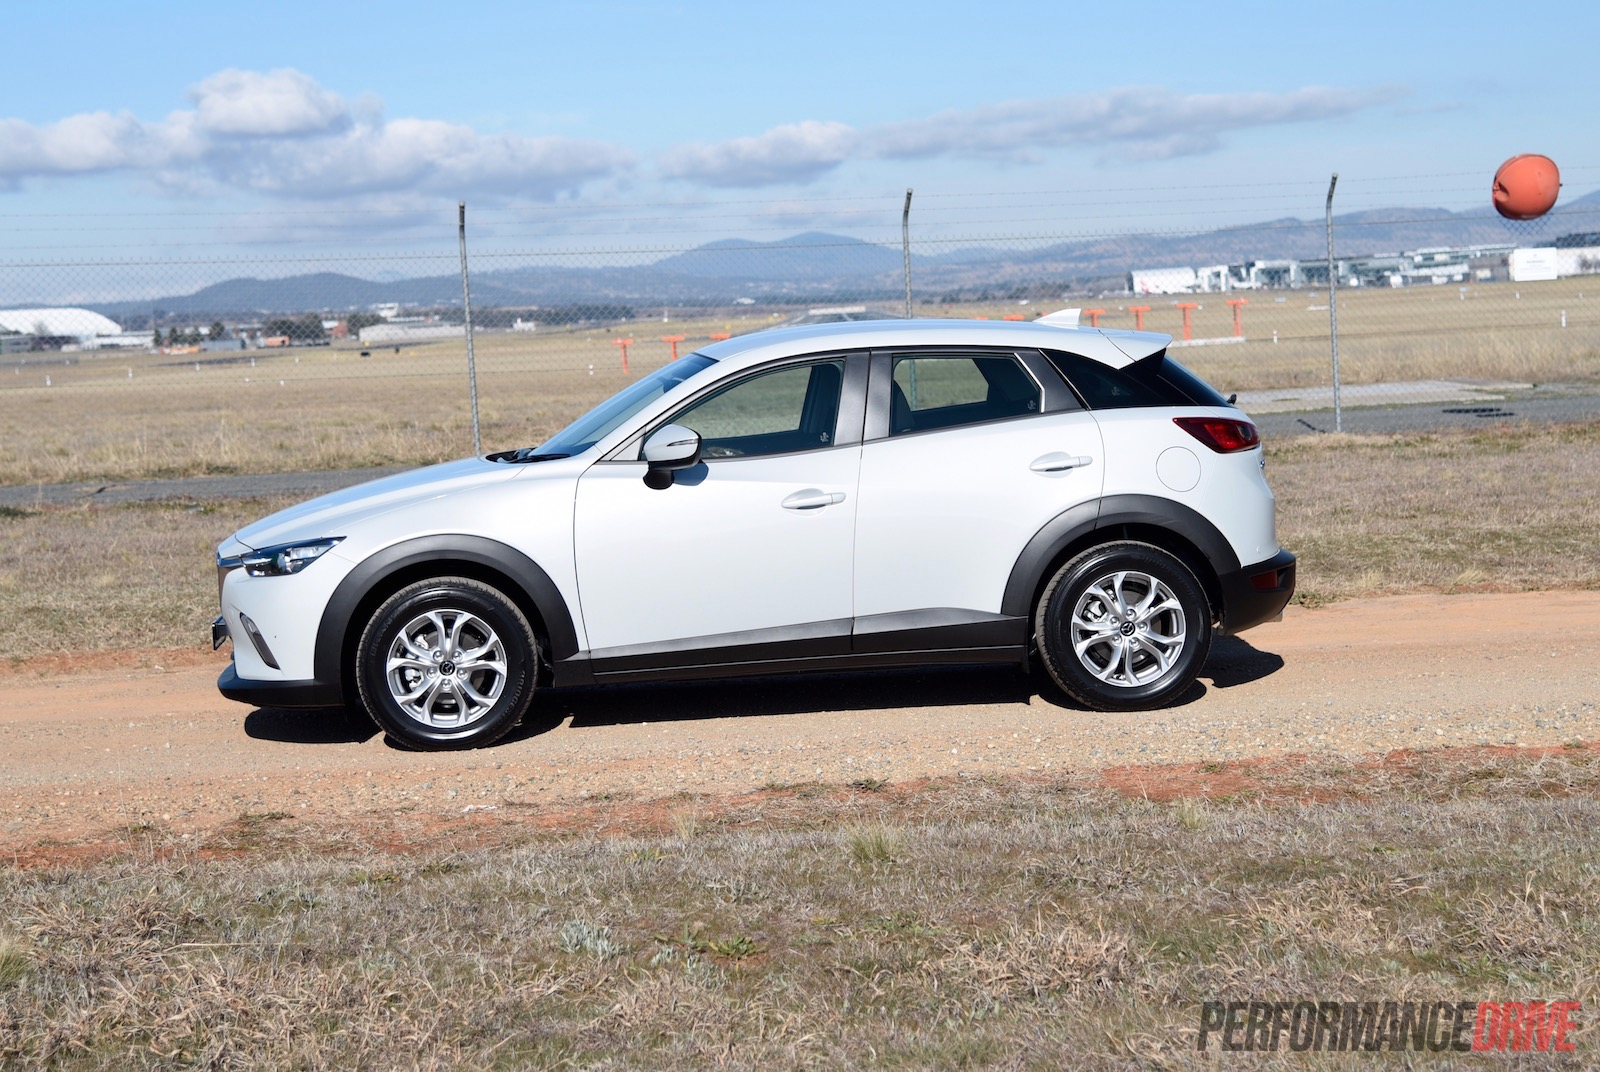 2015 Mazda Cx 3 Maxx 1 5 Diesel Review Video Performancedrive